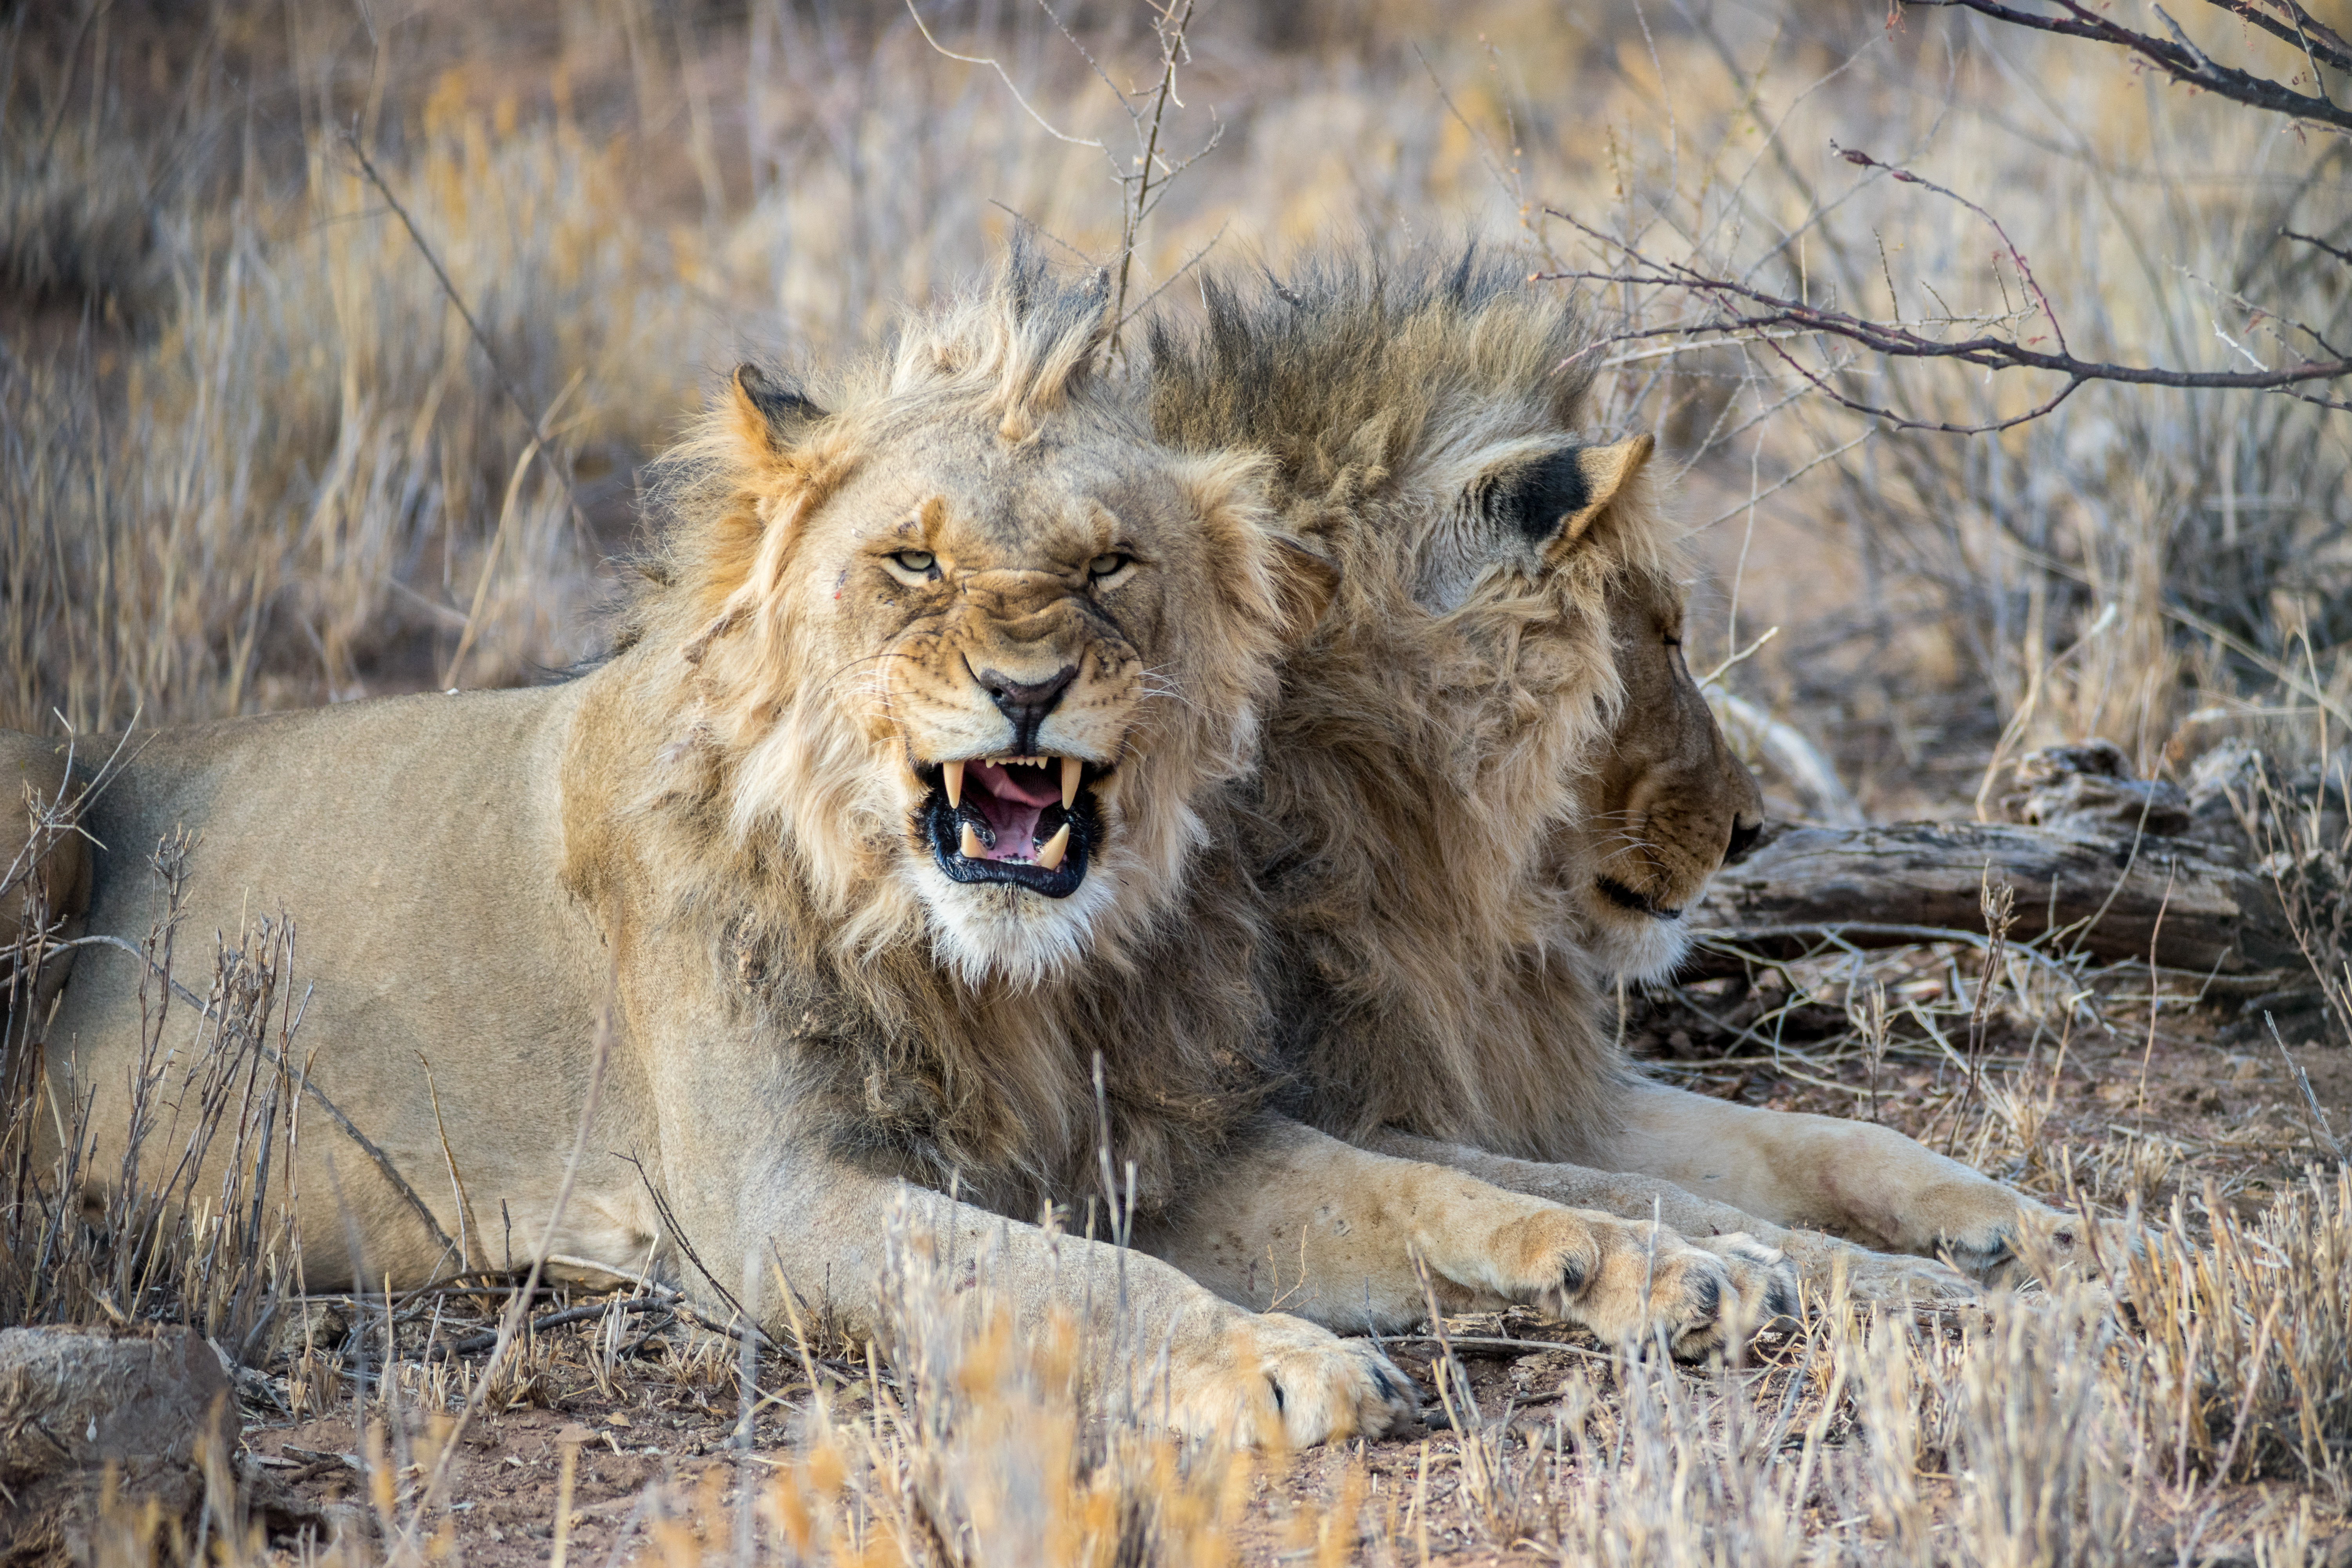 94484 download wallpaper Animals, Lion, Fangs, Big Cat, Evil screensavers and pictures for free